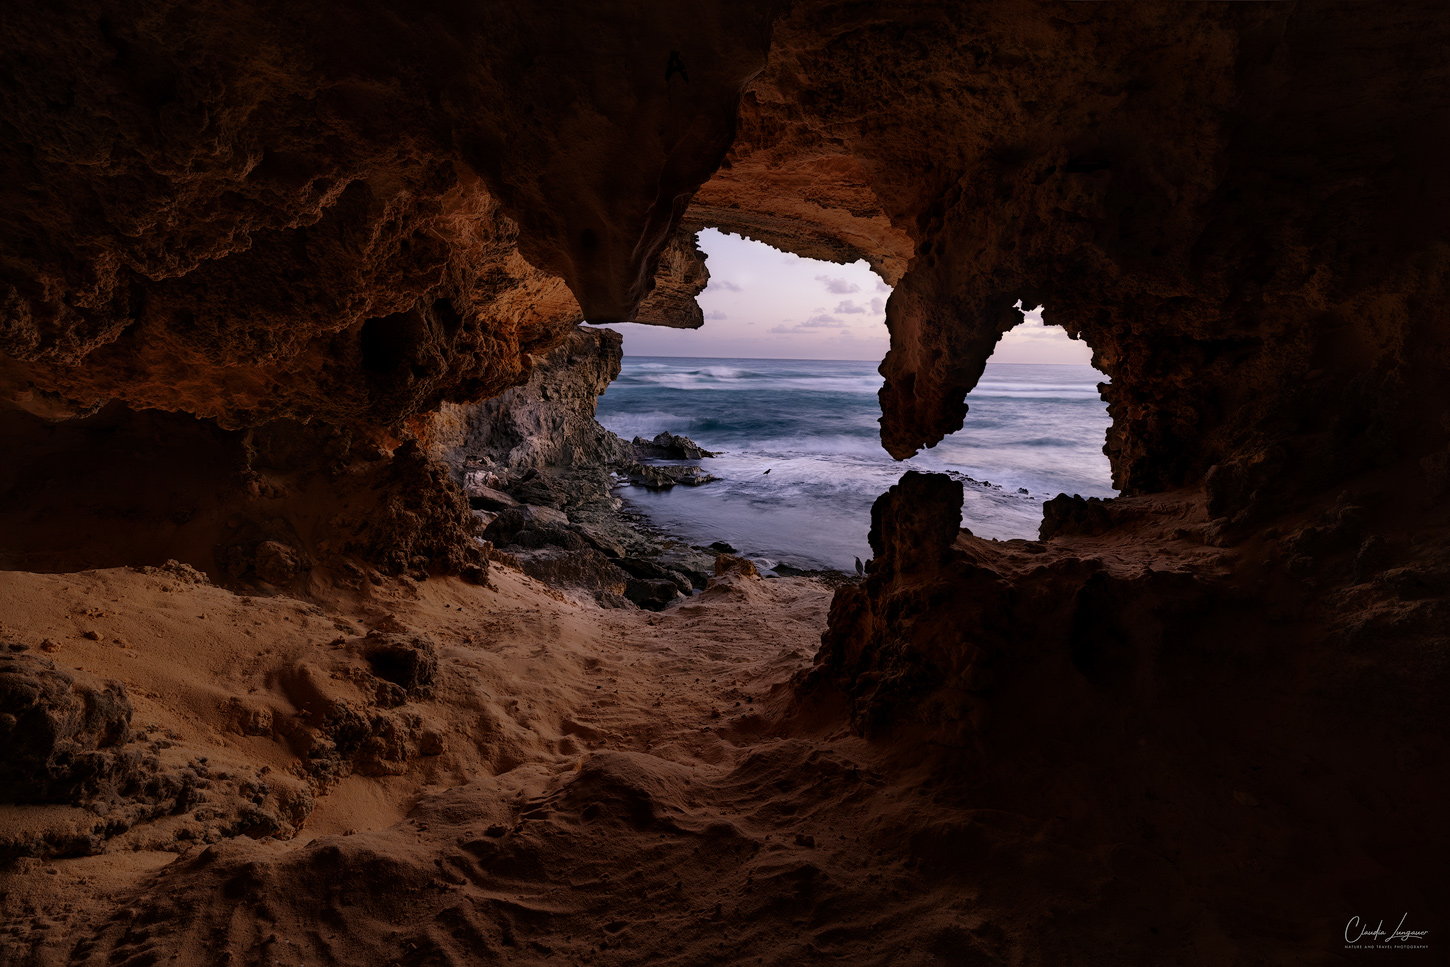 A cave near Shipwreck beach on the south shore of Kauai island in Hawaii with view on the Pacific Ocean.